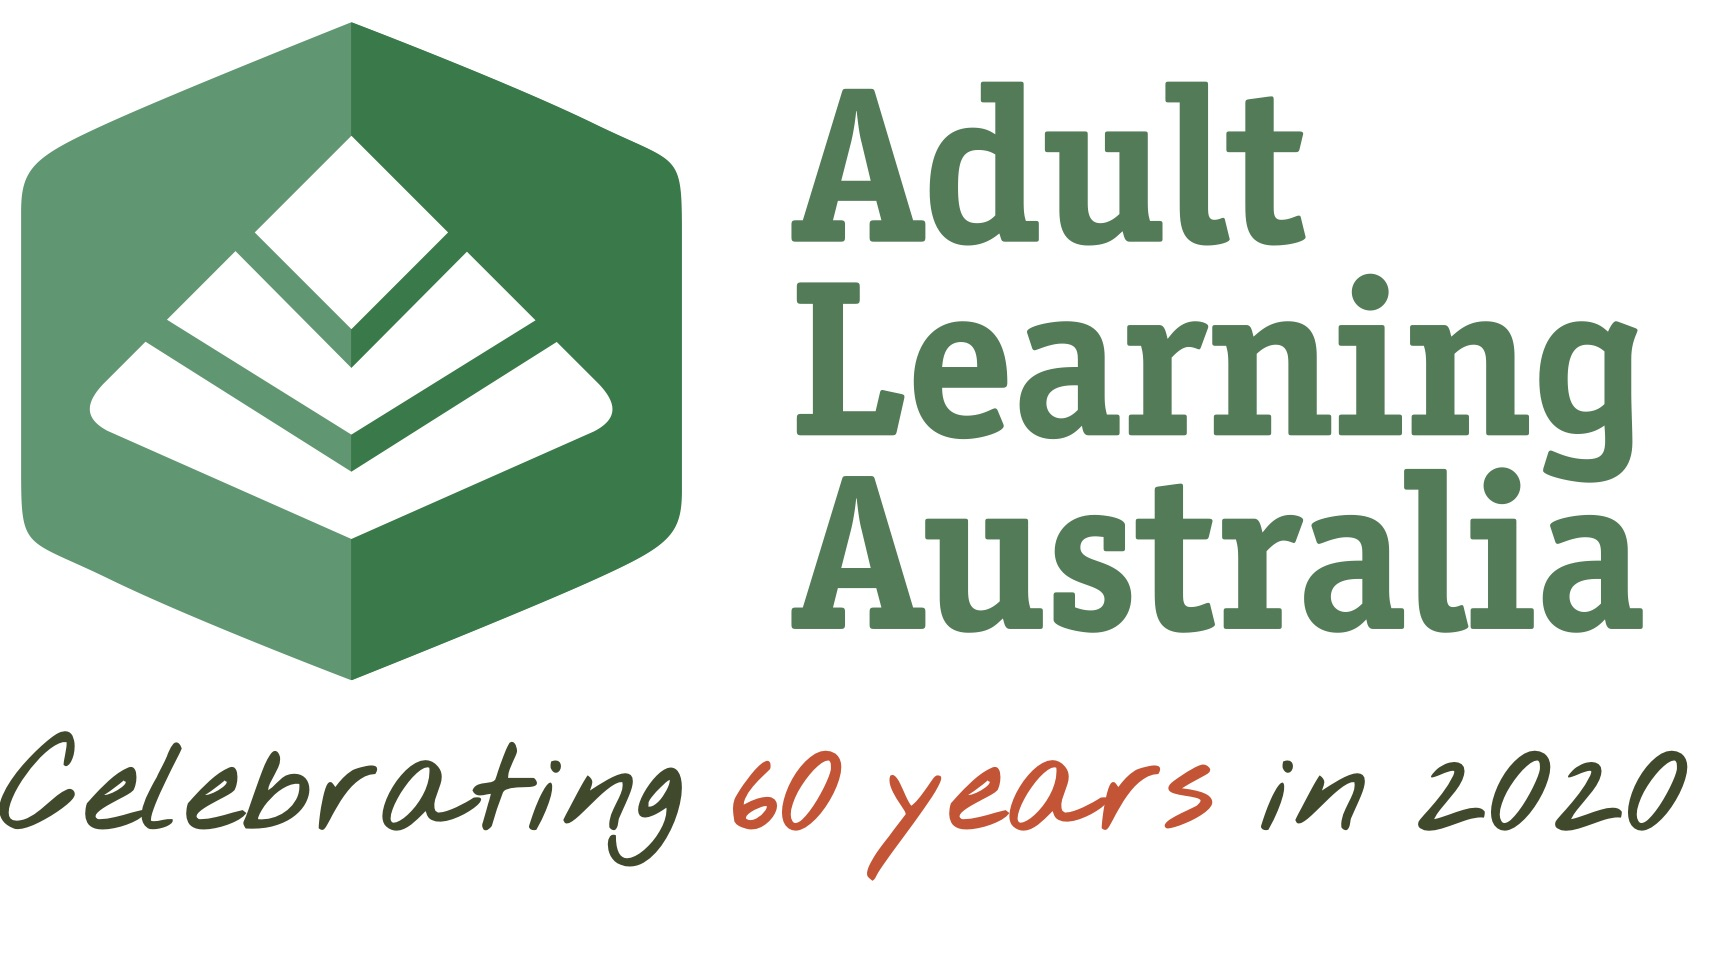 Adult Learning Australia logo